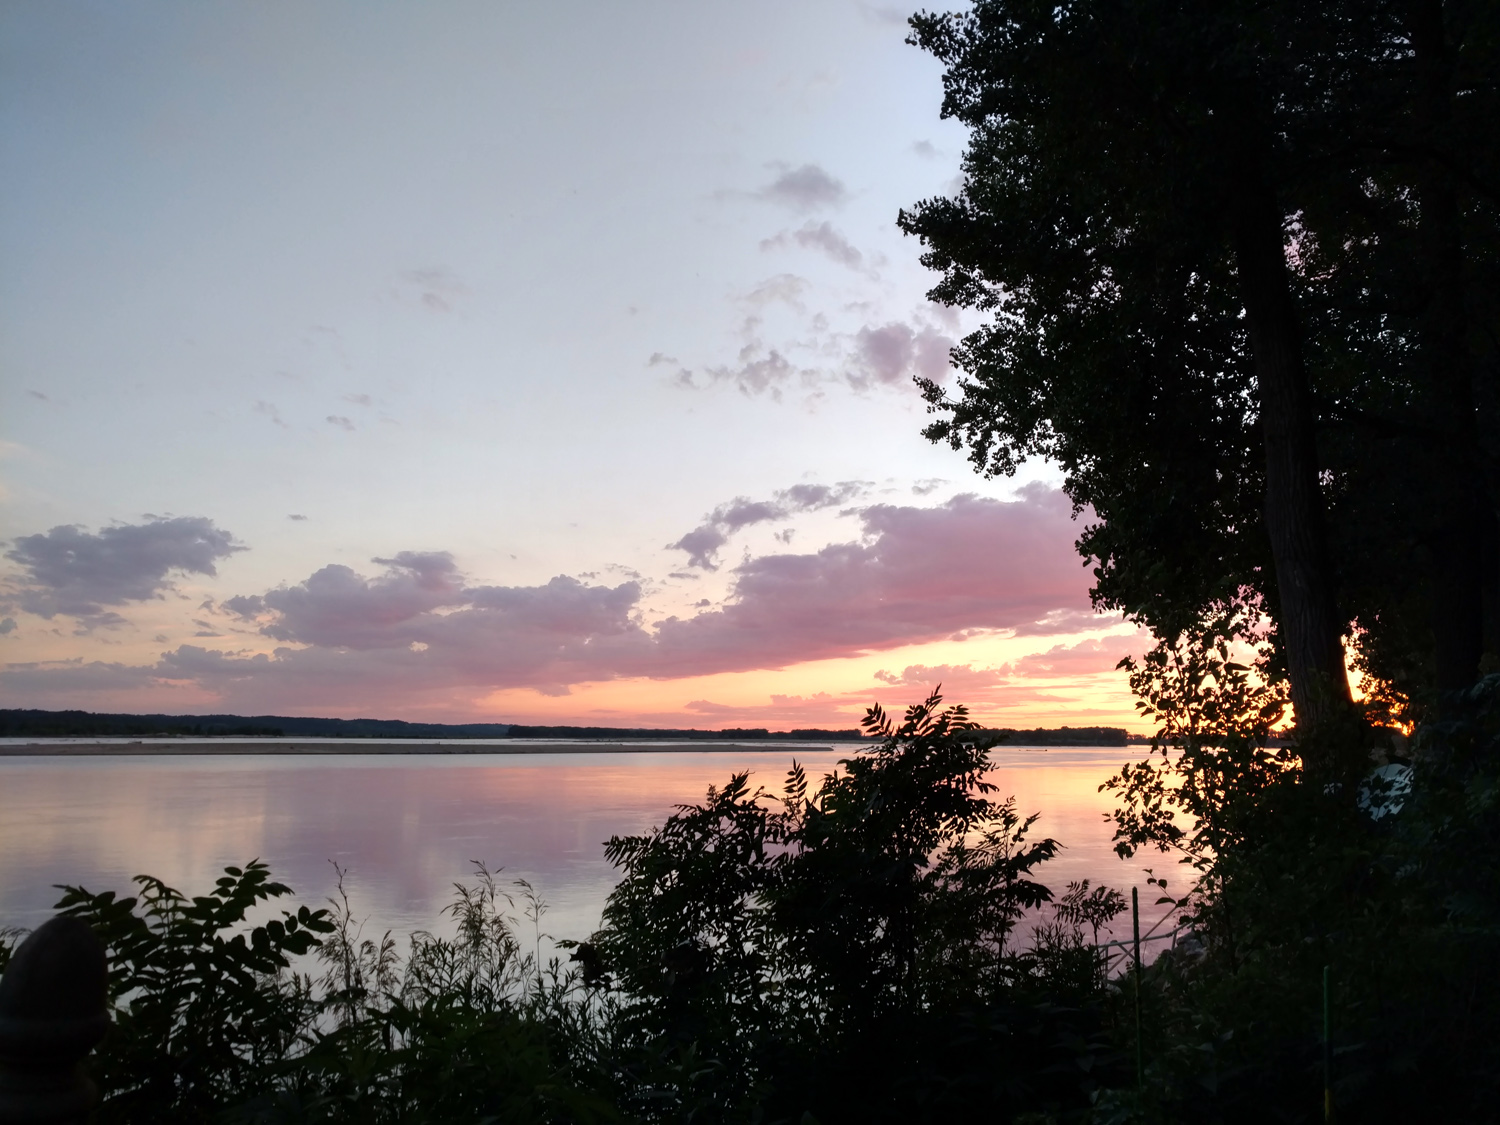 Sunset on the Missouri River, June 22, 2017